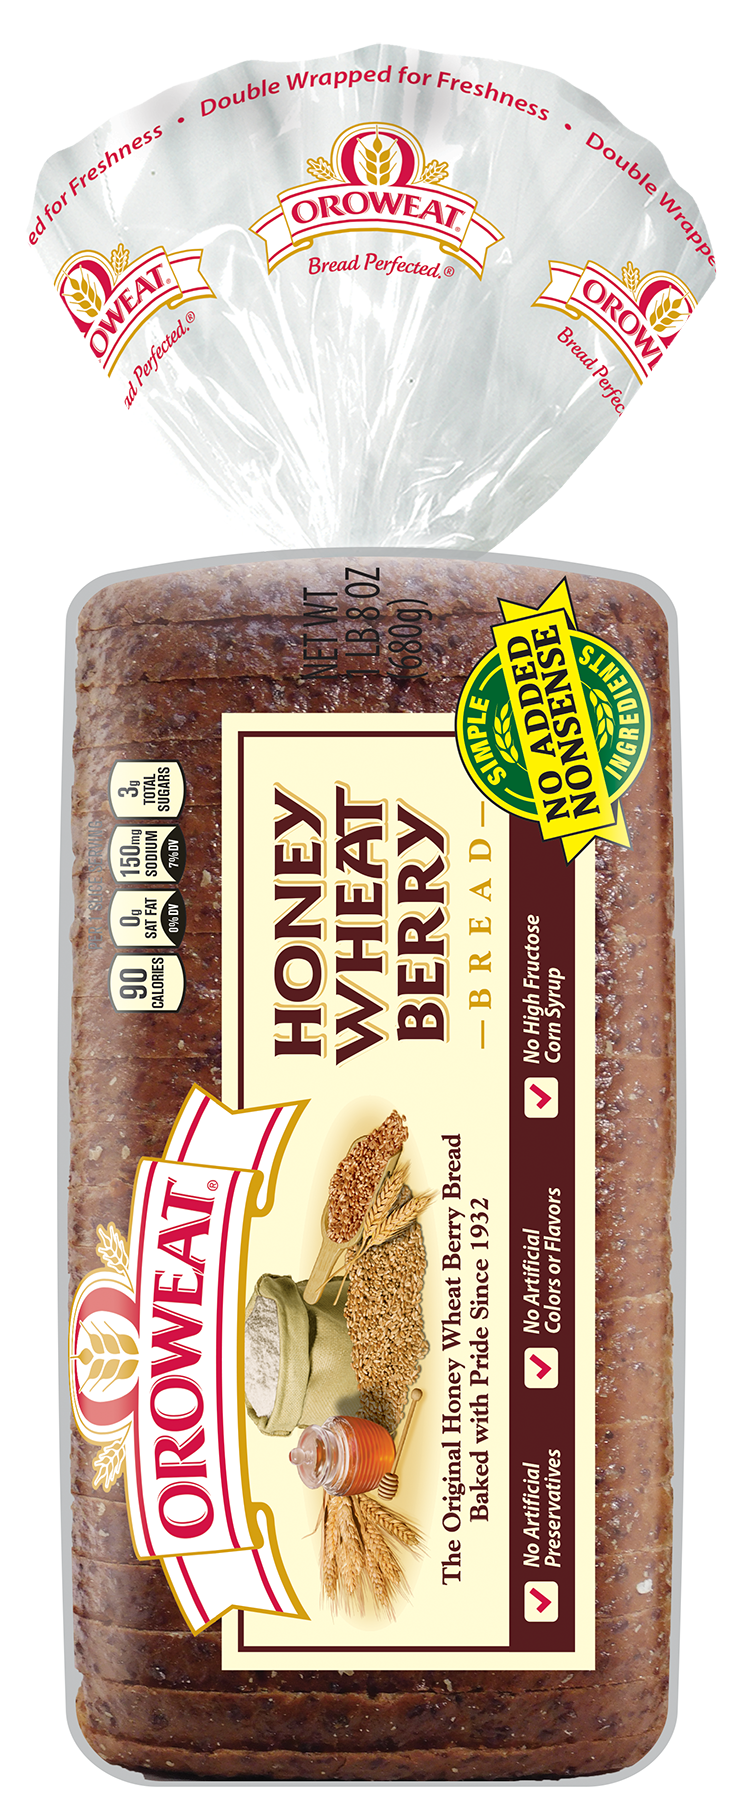 Oroweat Honey Wheat Berry Package Image